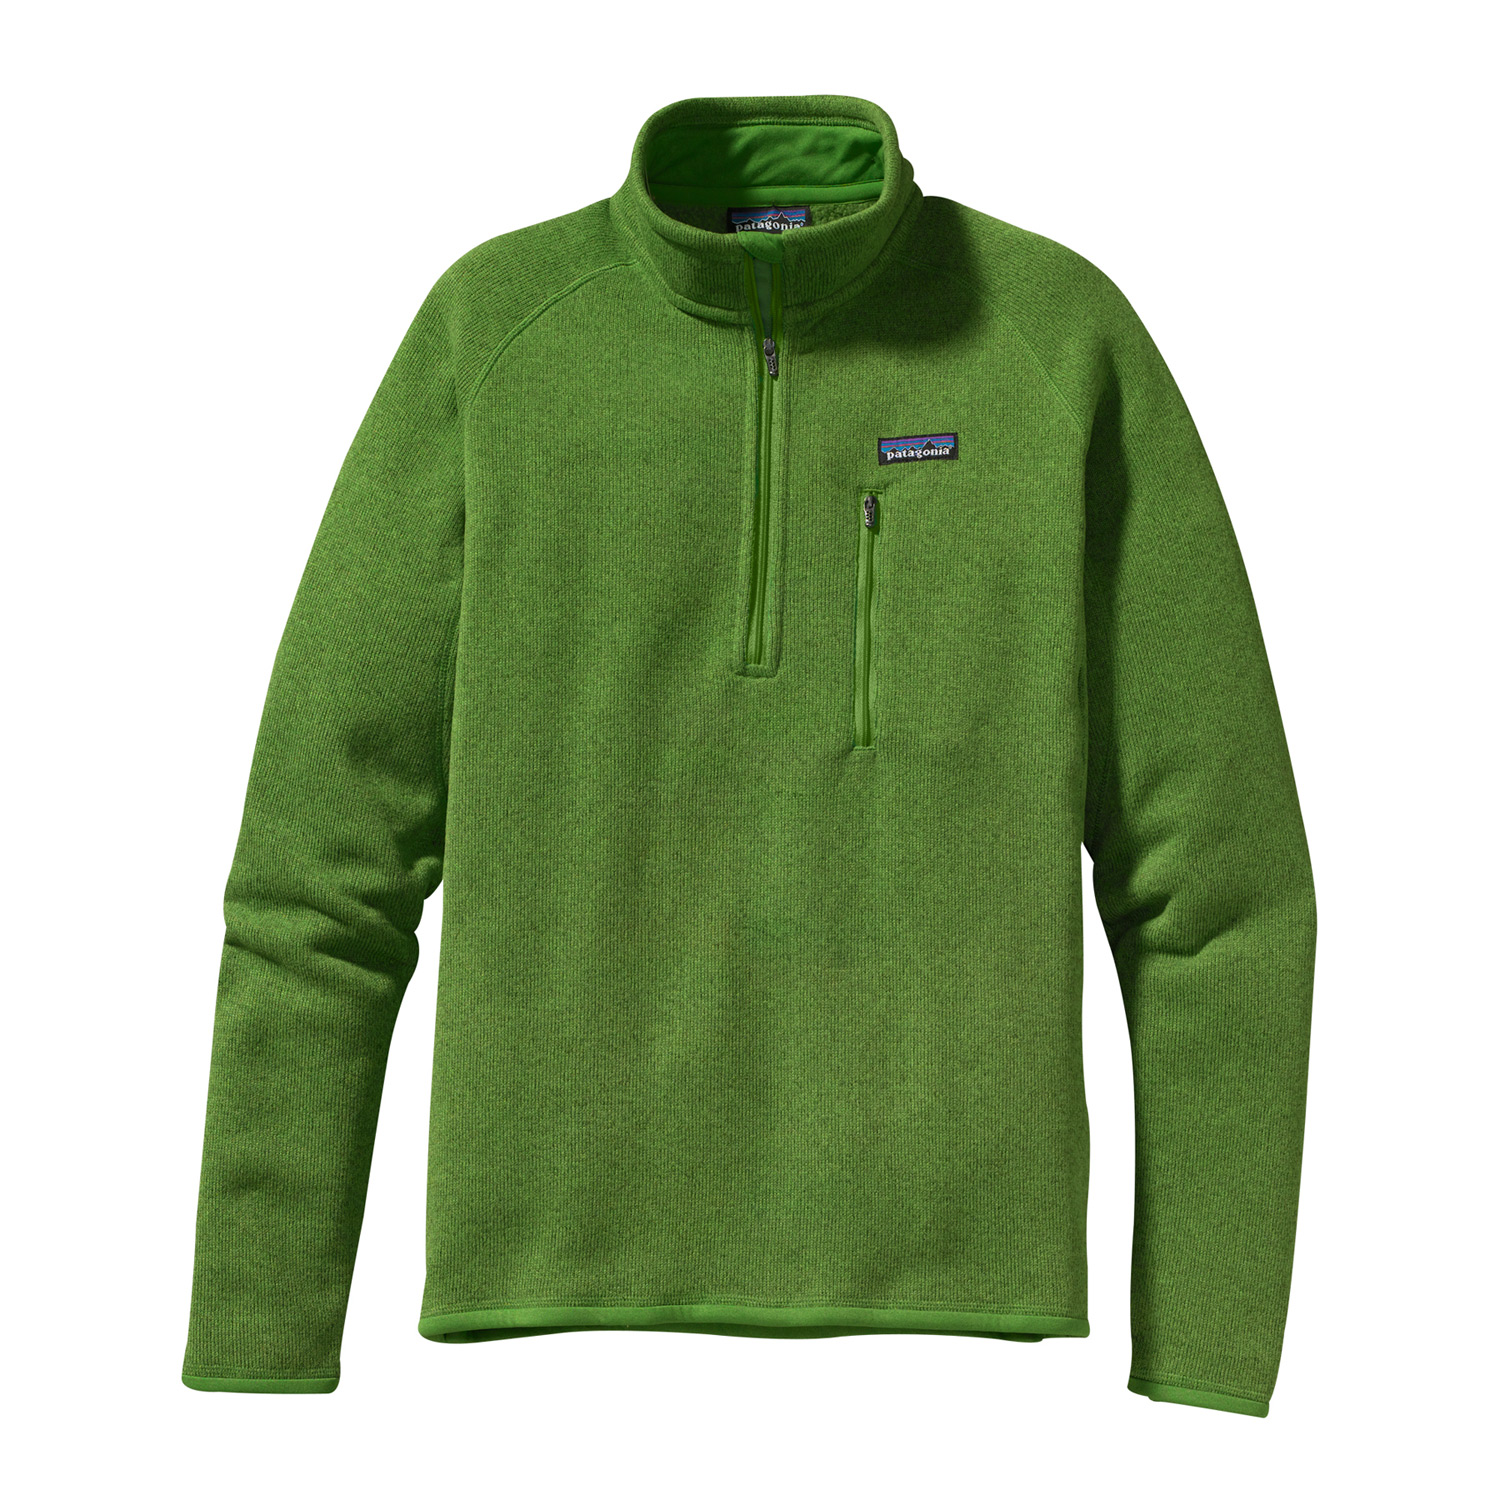 Wake A rugged, 1/4-zip fleece pullover that combines the aesthetic of wool with the easy care of polyester fleece. Wake up, check the buoys, slip on the Better Sweater 1/4-Zip and go. It's built of 9.5-oz polyester with a sweater-knit exterior and a fleece interior that creates an easy-wearing, moisture-wicking, bulk-free piece for handling the colder parts of the day. The stand-up collar has a zipper garage; raglan side and back seams make for a classic shape. Micro-polyester jersey trim at the collar, cuffs and hem wicks sweat, and a vertical zippered chest pocket secures keys and cash.Key Features of the Patagonia Better Sweater 1/4 Zip Fleece: Regular fit Fabric has a sweater-knit face, fleece interior and heathered yarns 1/4-zip pullover with stand-up collar and zipper garage Raglan sleeves for pack-wearing comfort Zippered chest pocket Micropolyester jersey trim on cuffs, hem and back of neck Can be worn with layers as outerwear in cold conditions, or as a midlayer under a shell jacket Hip length 9.5-oz 100% polyester with a sweater-knit exterior and a fleece interior 490 g (17.3 oz) Made in Thailand. - $79.95